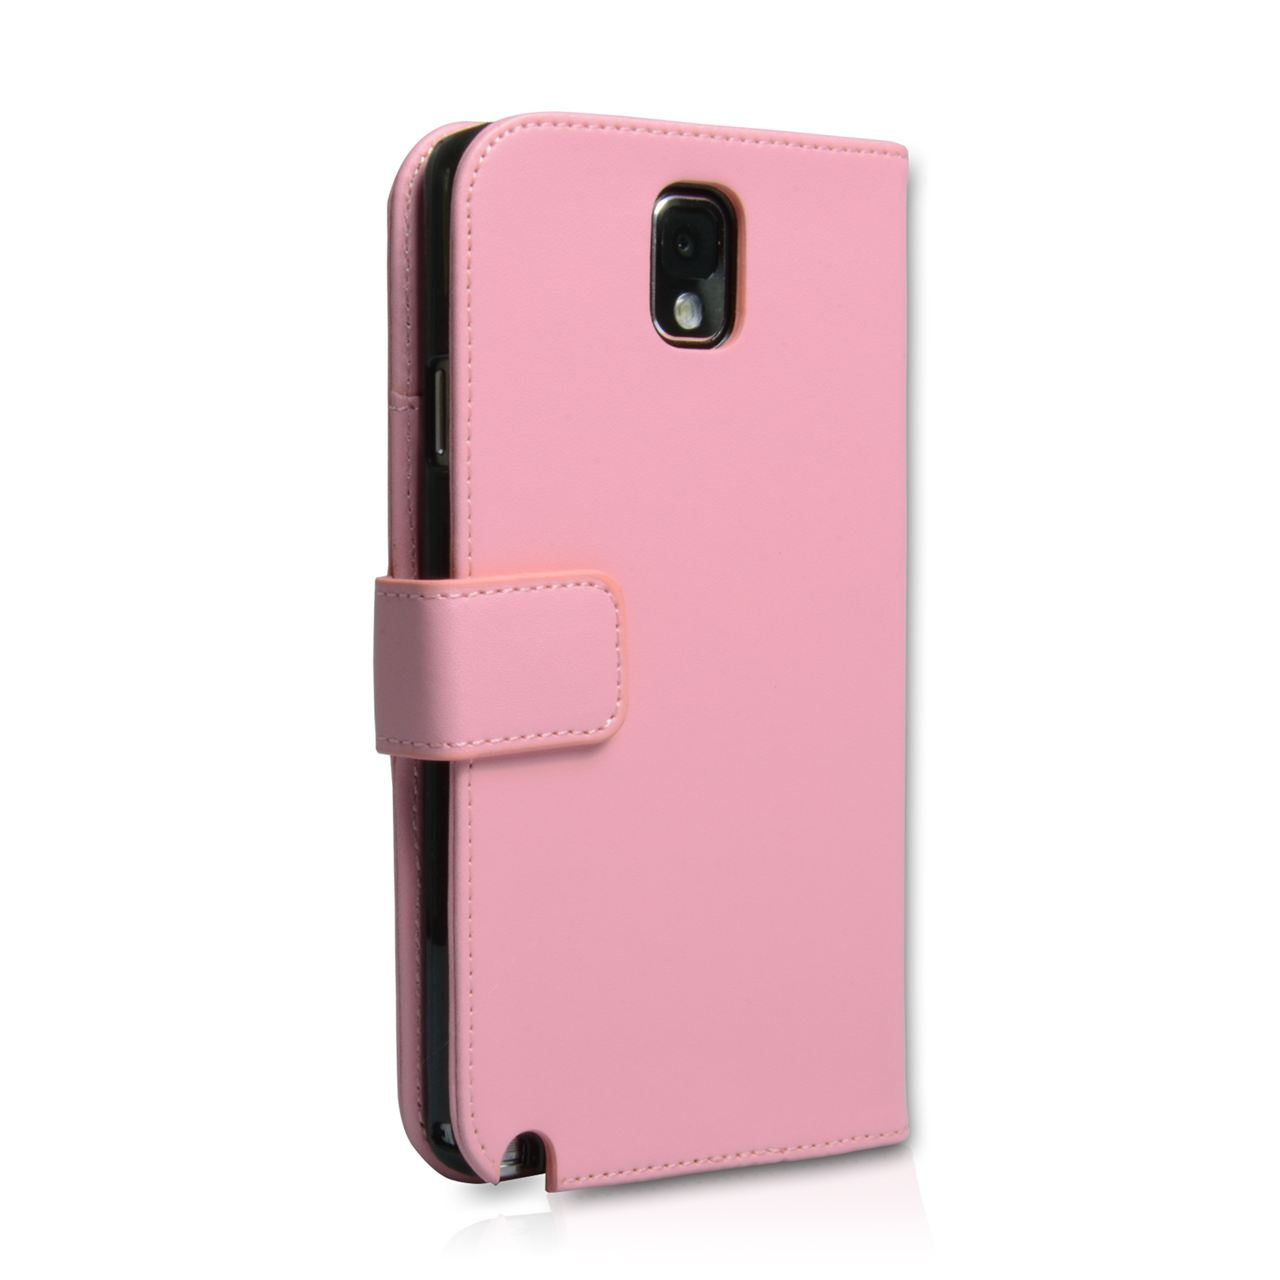 YouSave Samsung Galaxy Note 3 Leather Effect Wallet Case - Baby Pink